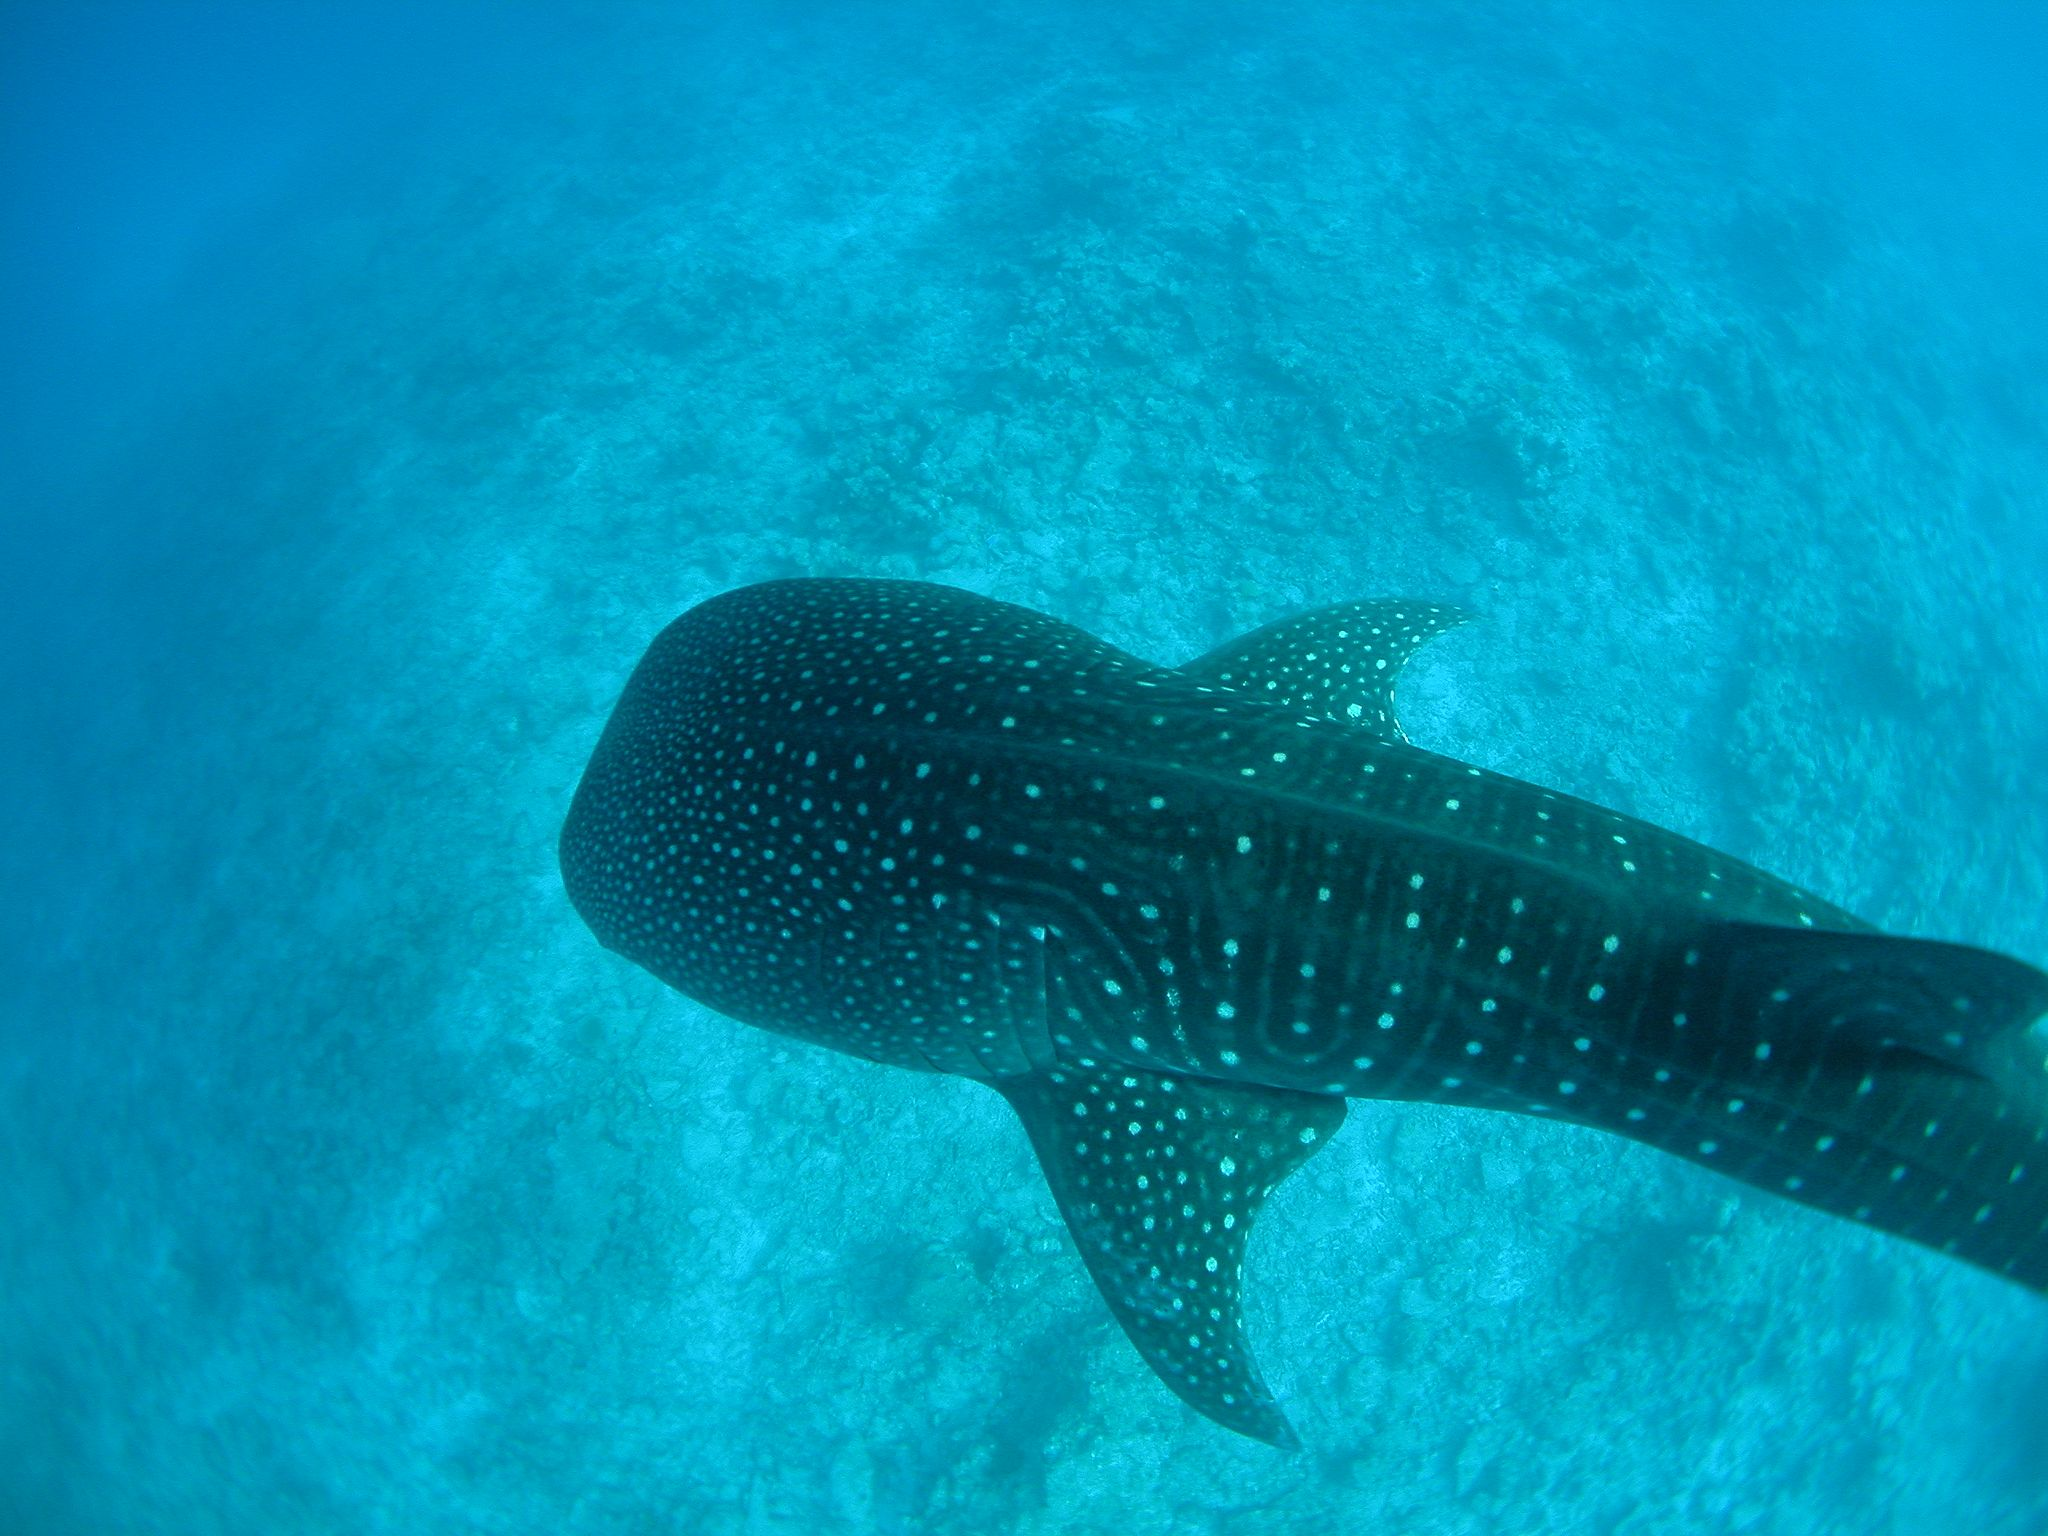 A spotted whale shark seen from above in a very clear, blue sea, Holbox